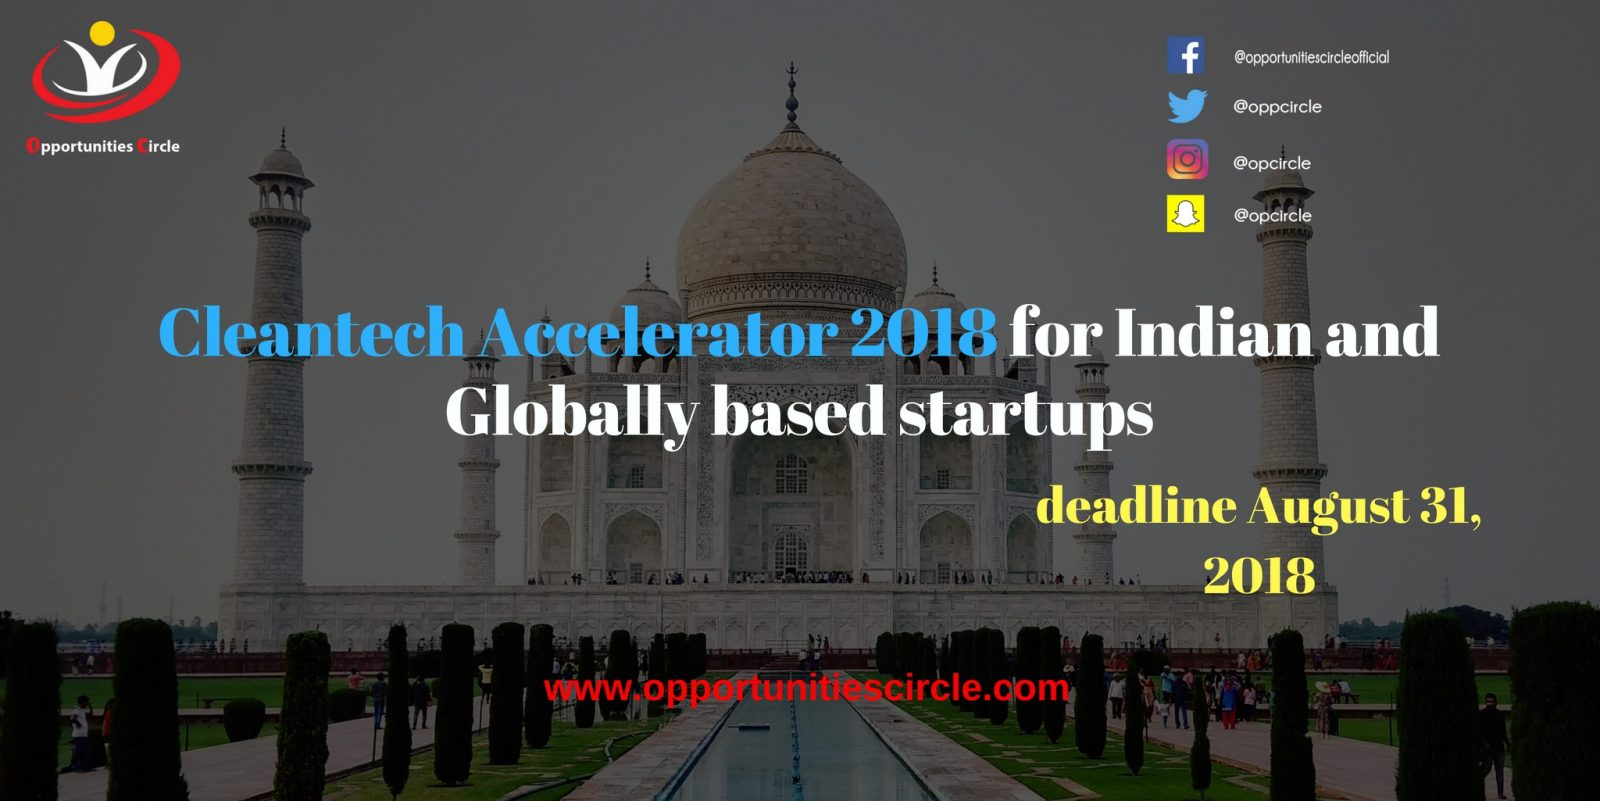 Cleantech Accelerator 2018 for Indian and Globally based startups - Cleantech Accelerator 2018 for Globally based startups